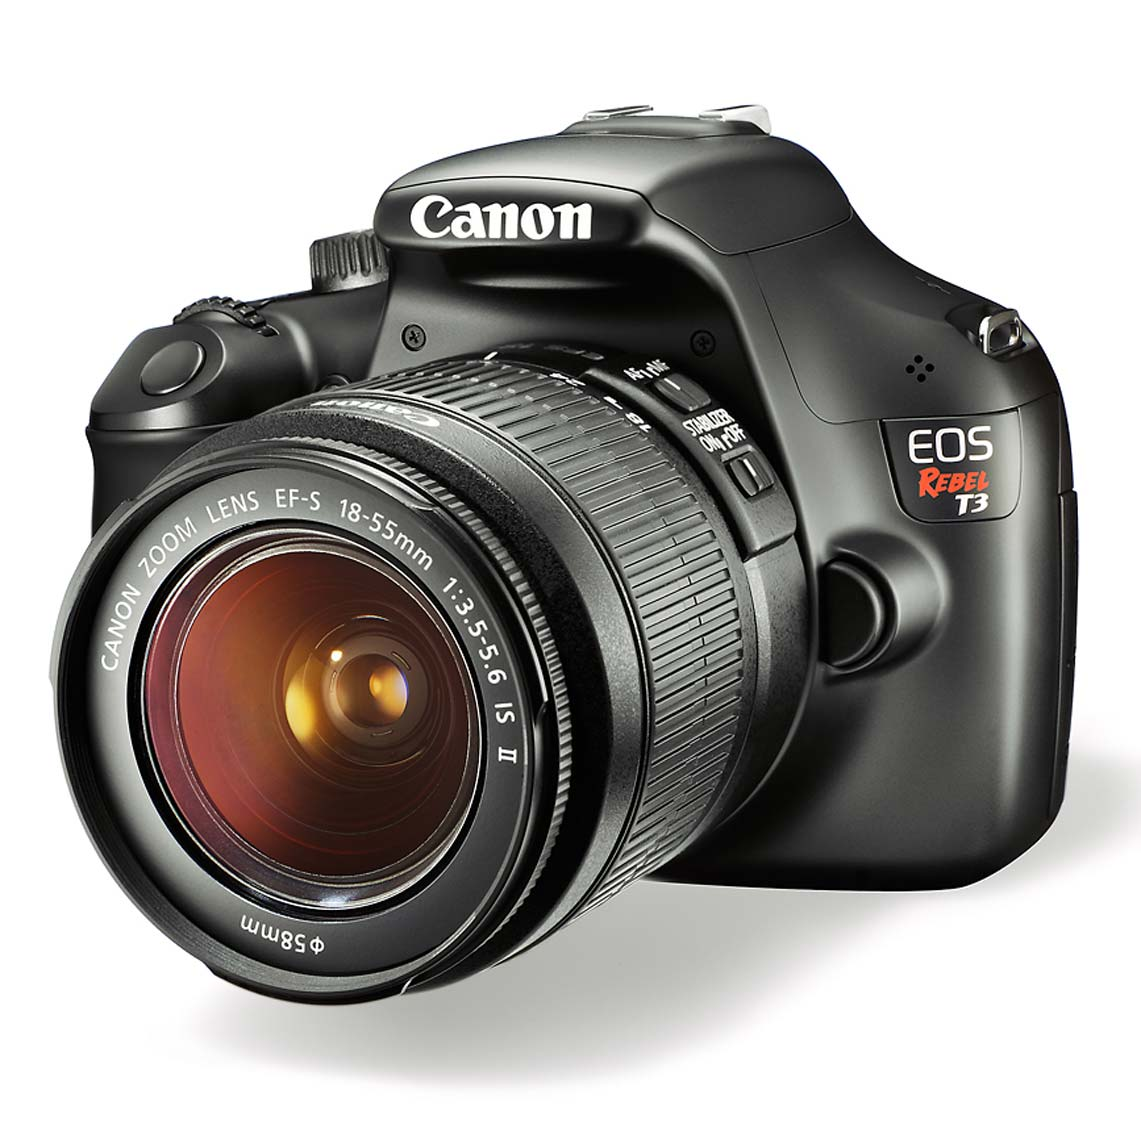 Canon_camera_retouched2.jpg